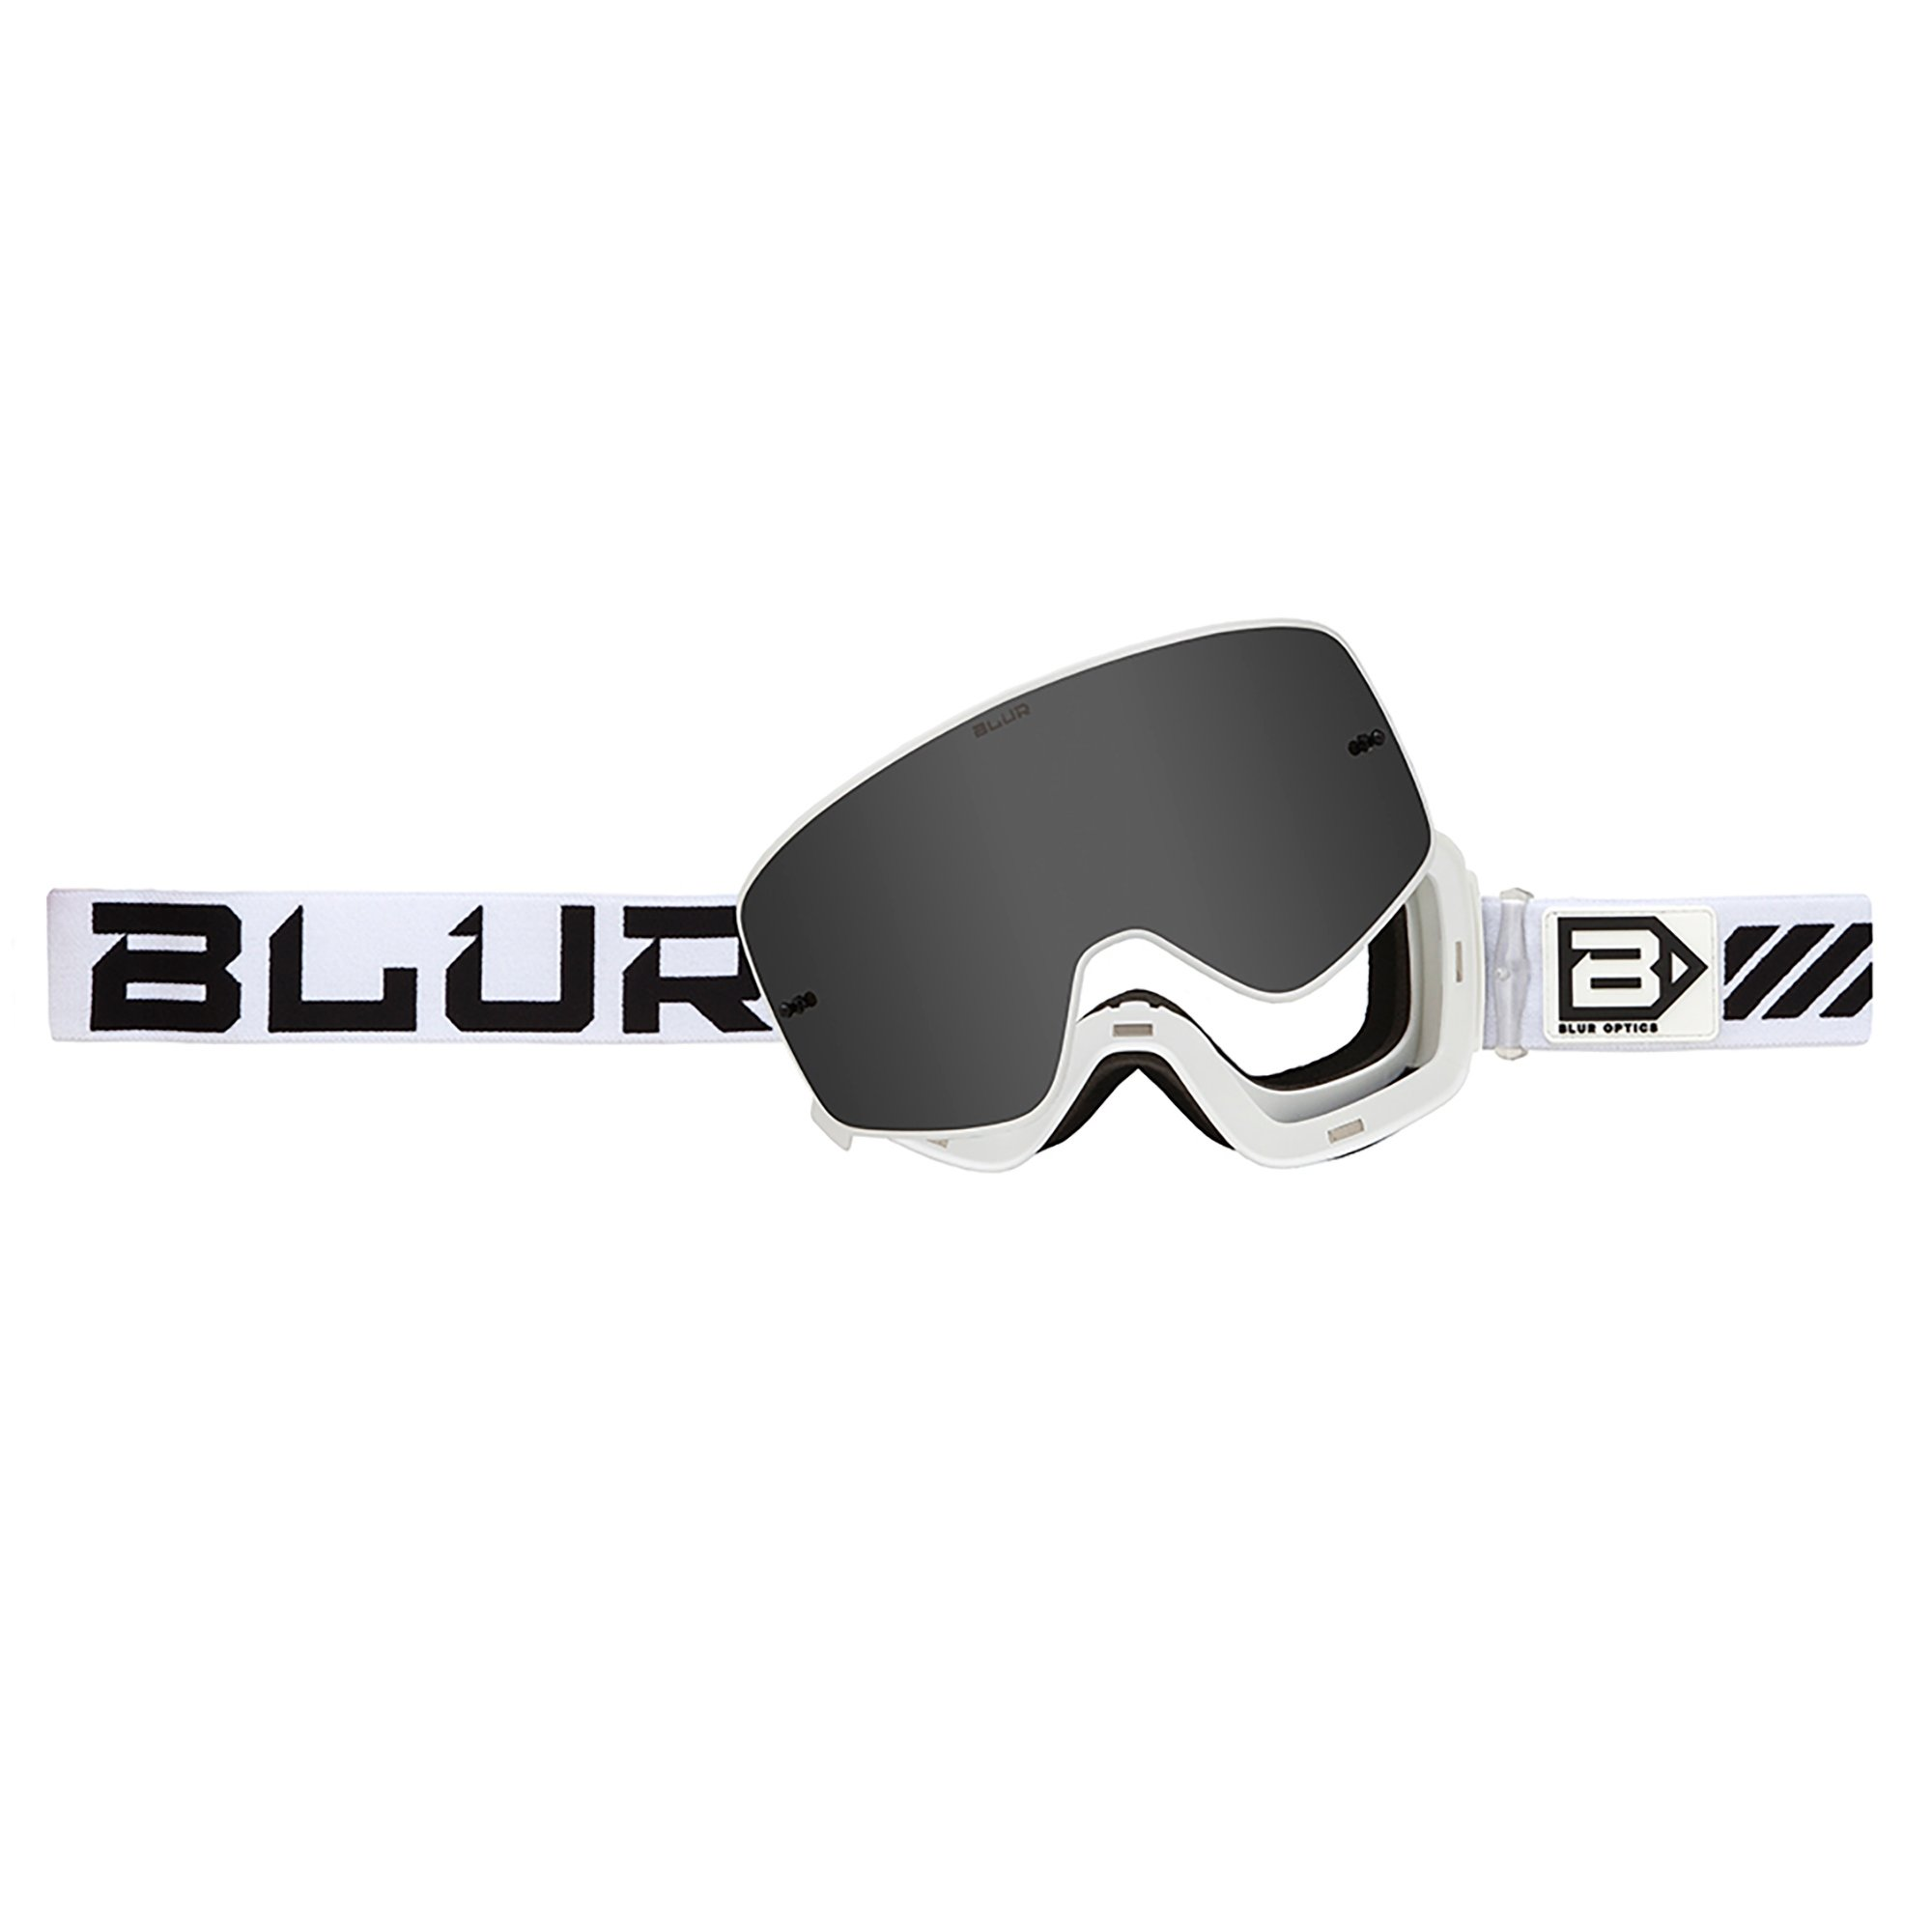 Blur Unisex-Adult B-50 Force Goggle with Magnetic Lens (White, One Size) by Blur